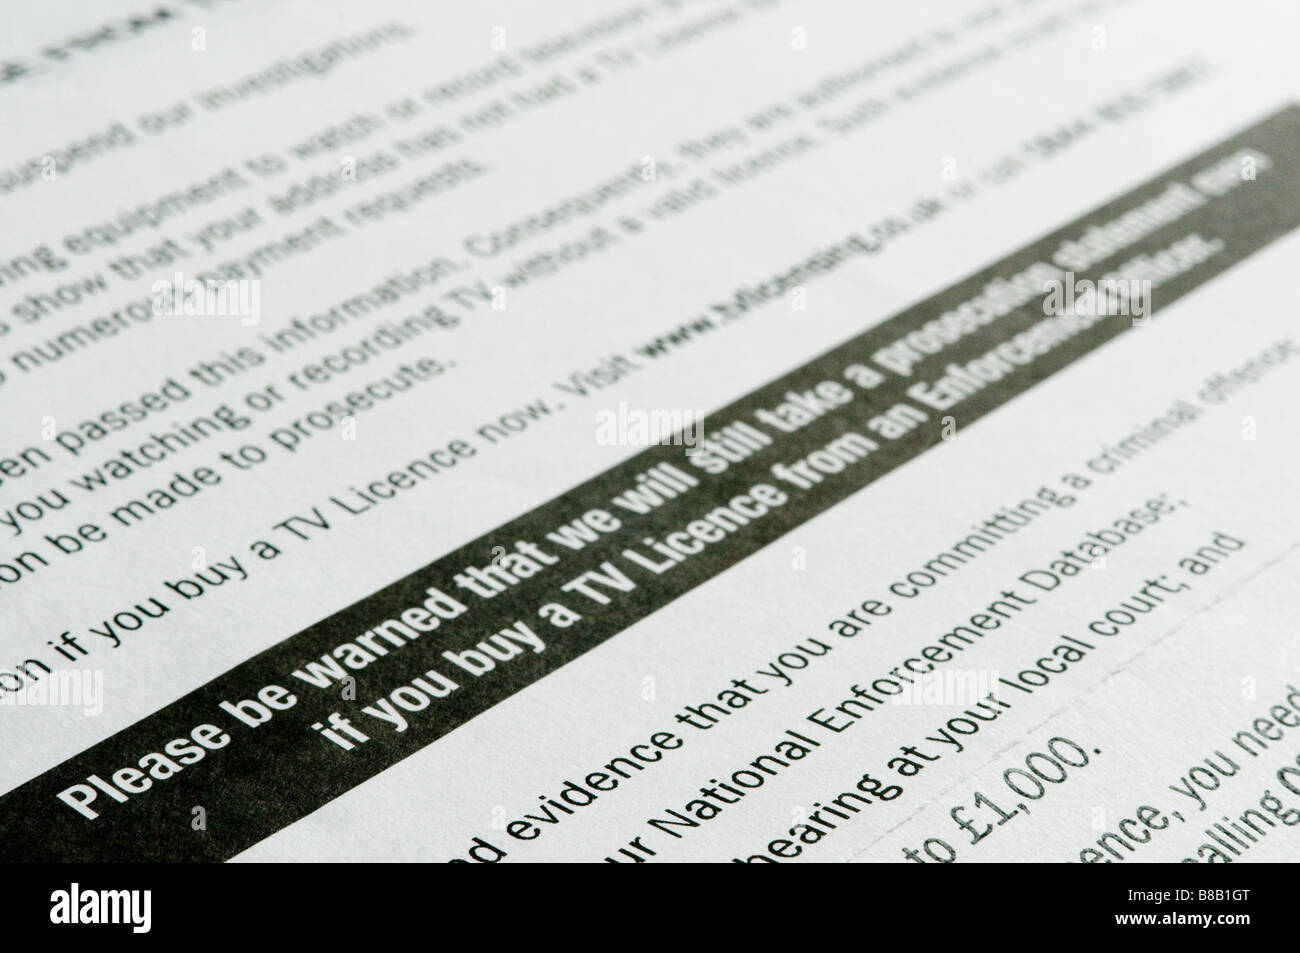 Letter from TV Licencing warning about criminal/legal proceedings if licence is not purchased. - Stock Image